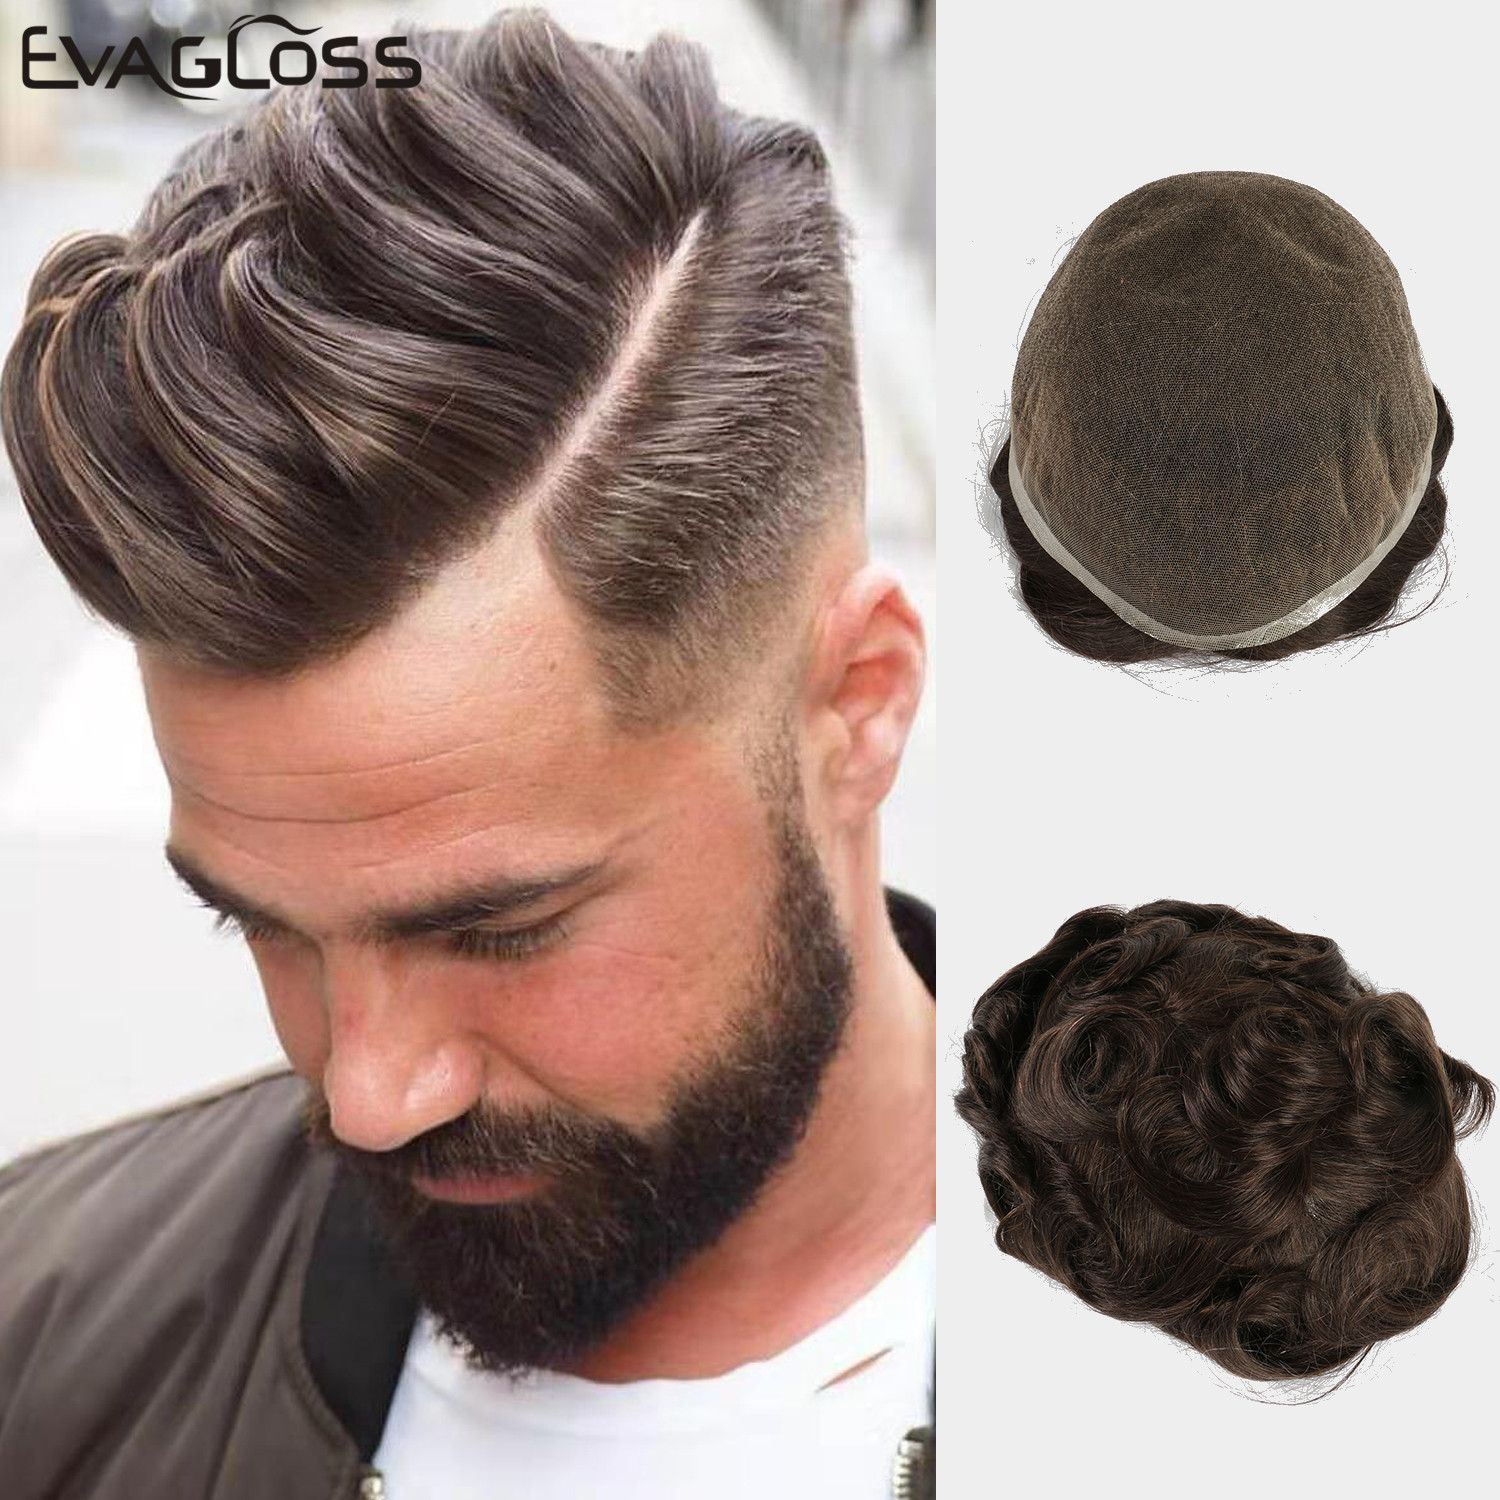 EVAGLOSS Men's Wig Super Durable Swiss Lace Mens Toupee Natural Indian Human Hair Mens Toupee 8*10 Inches Fast Shipping